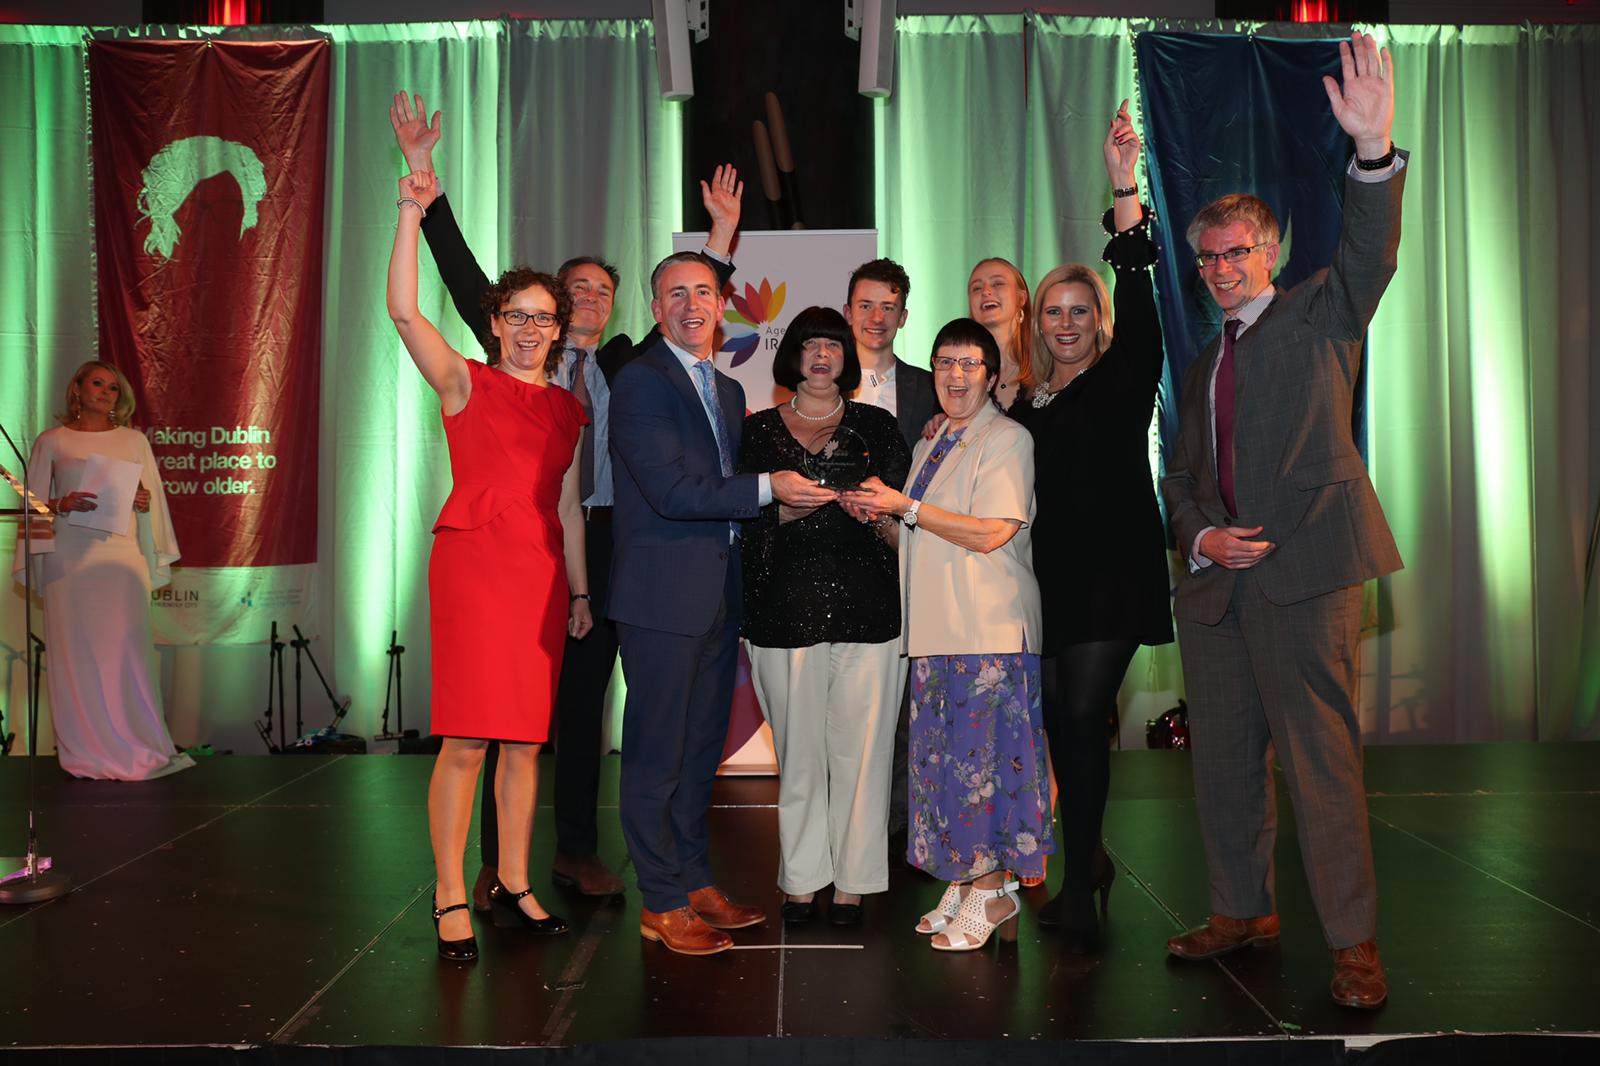 Cork County Age Friendly House Design Wins National Award